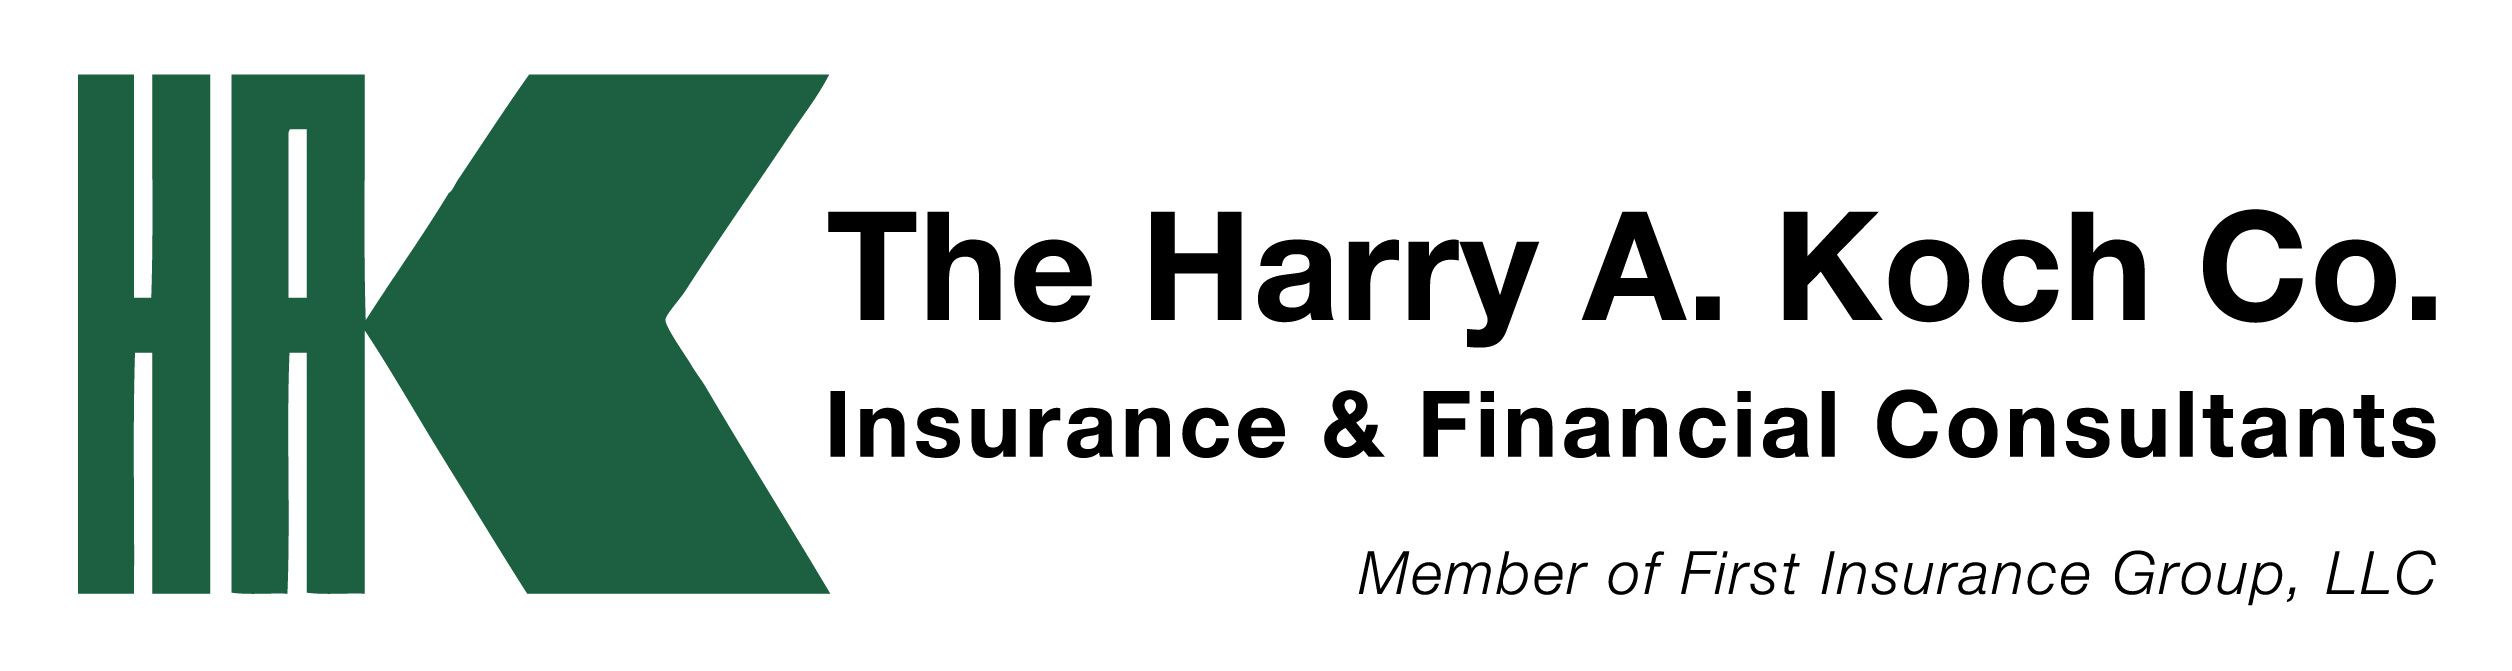 Harry A. Koch Omaha 2018